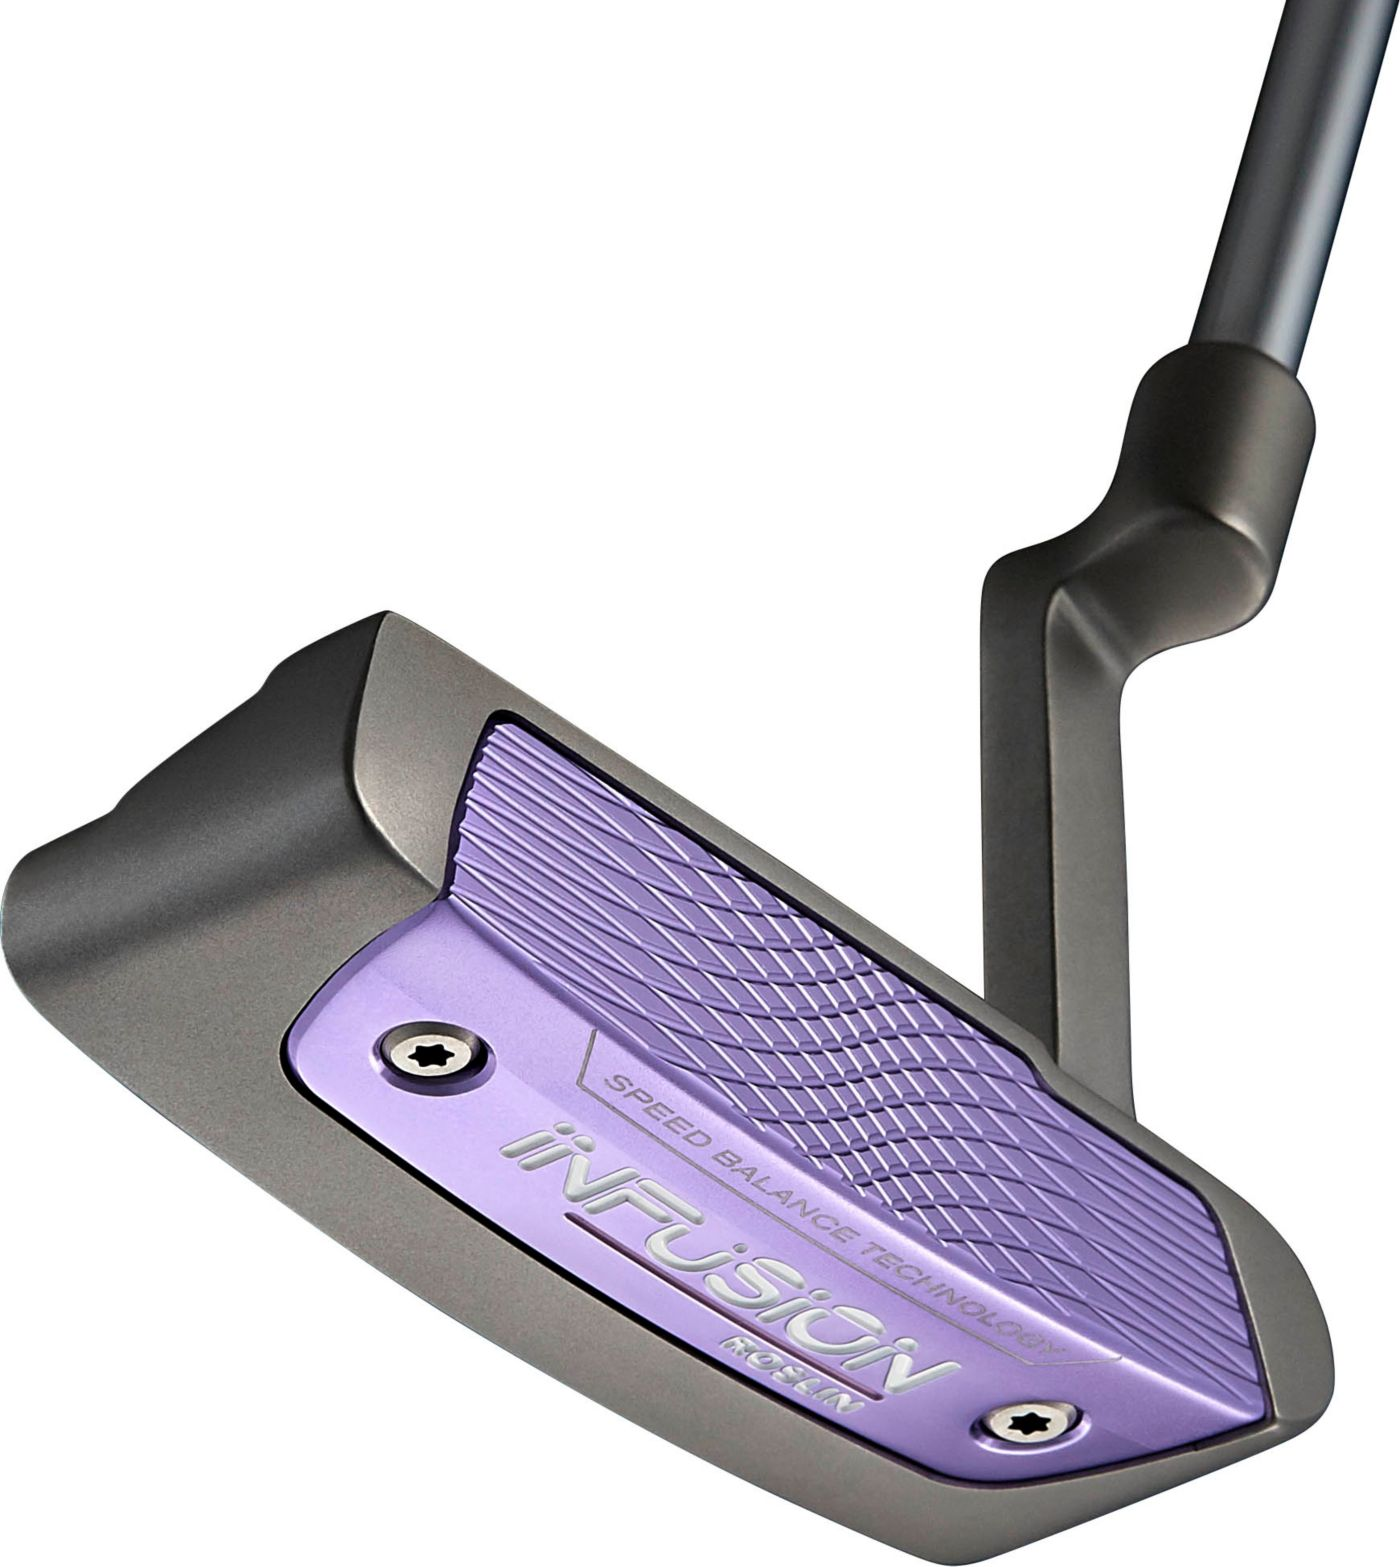 Tommy Armour Women's Infusion Series Roslin Putter